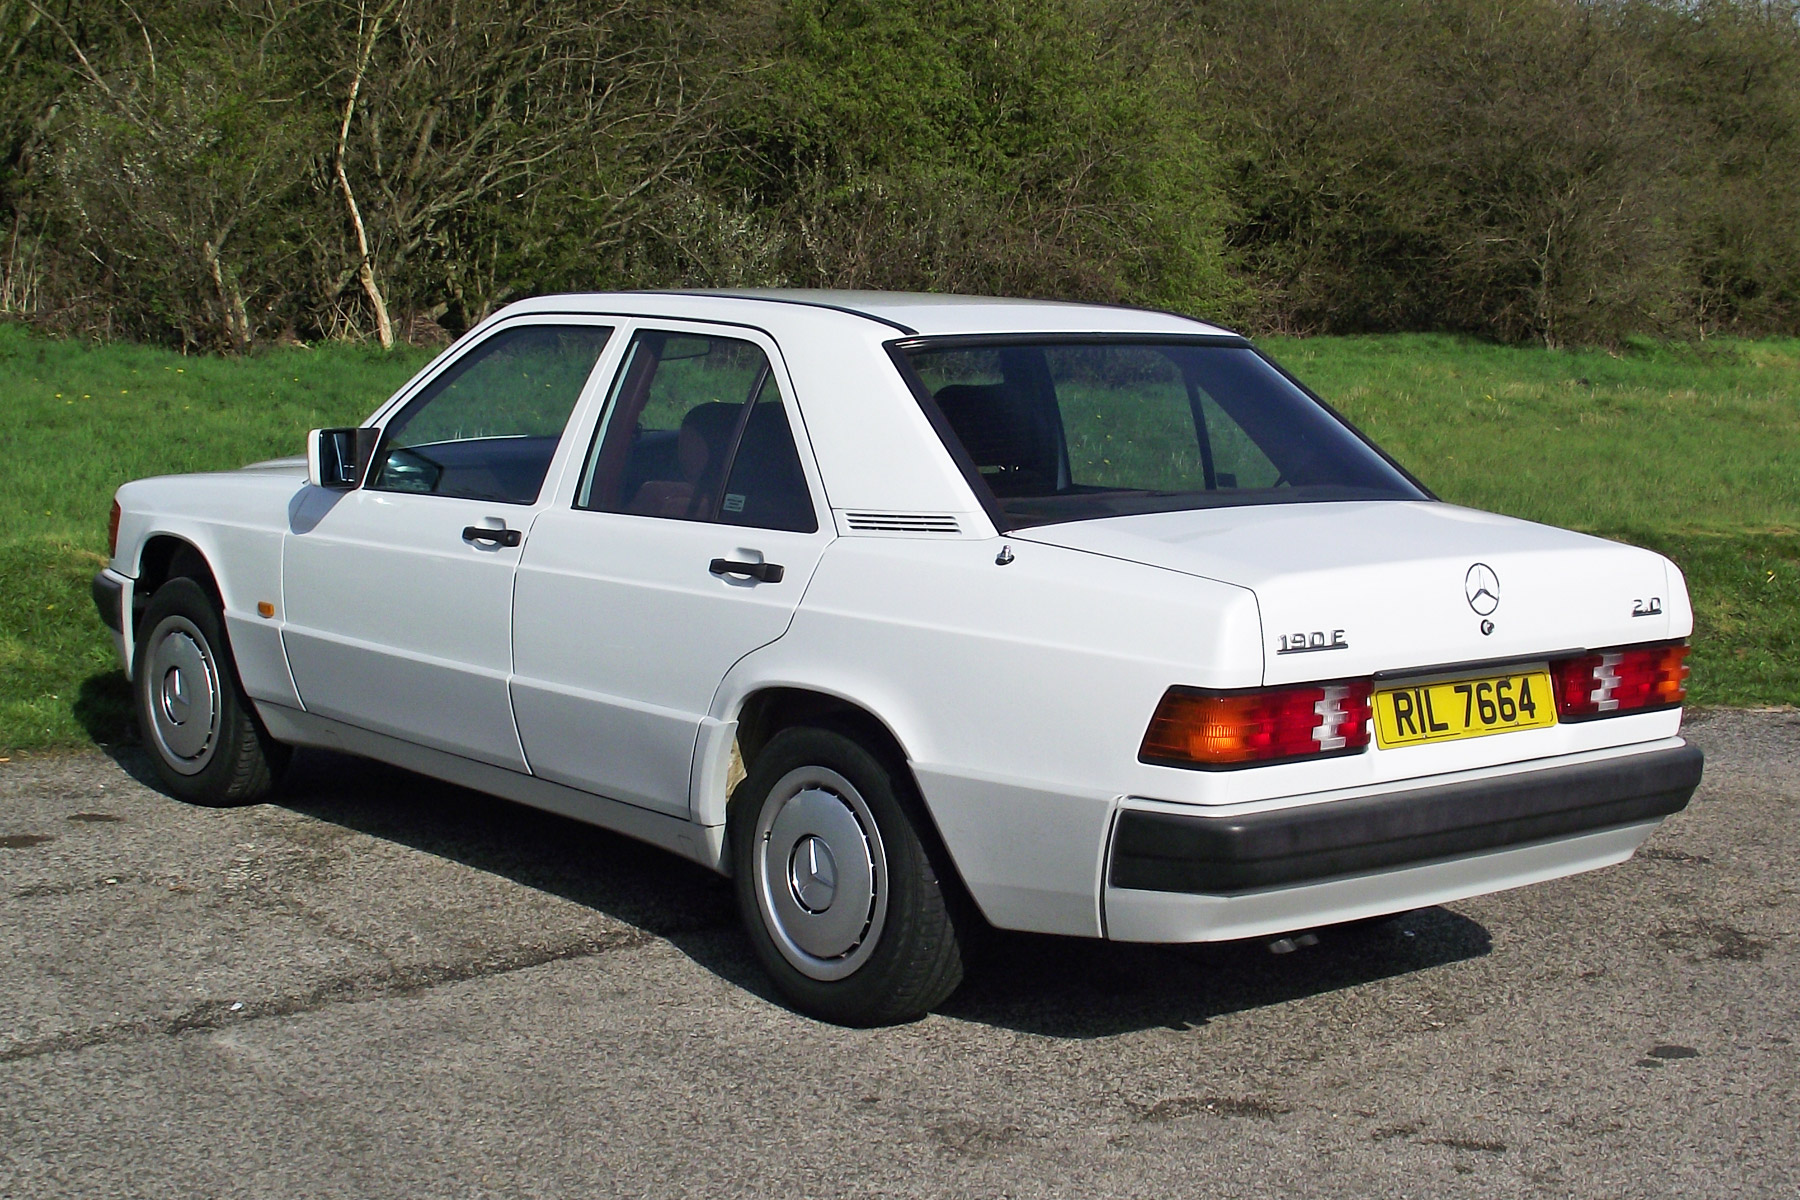 Mercedes-Benz 190E: should I buy one?